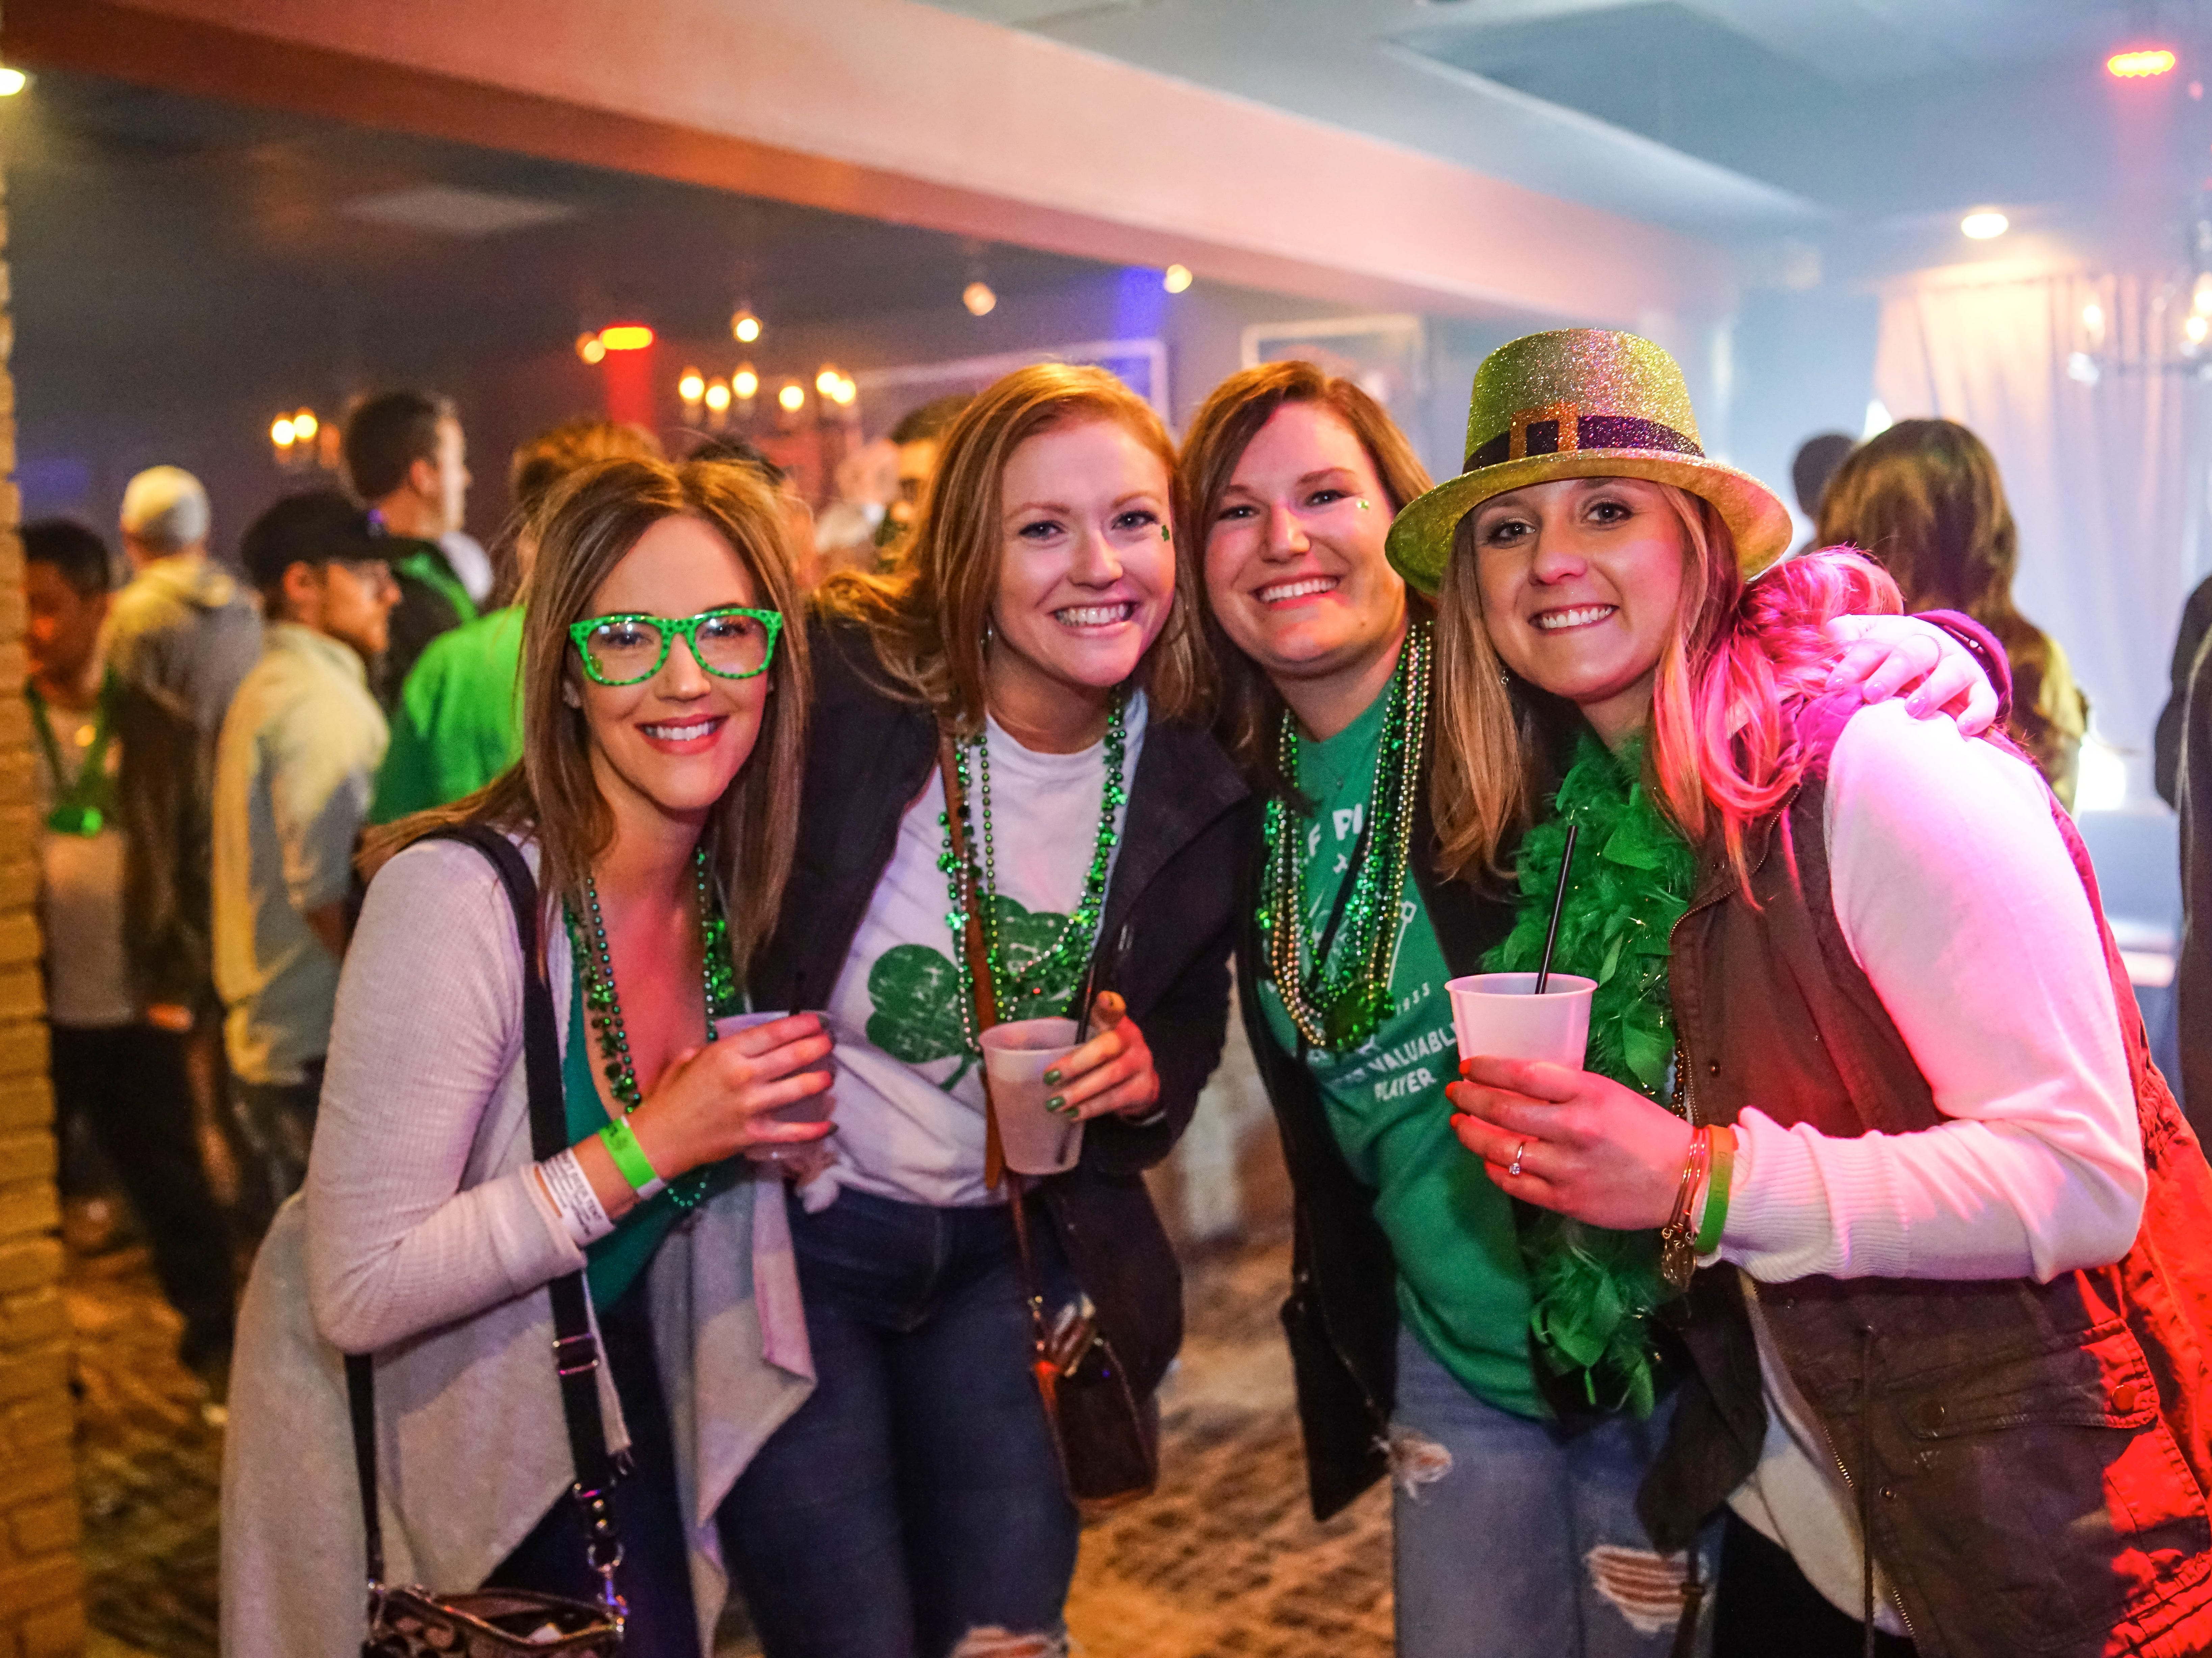 Emily Moe, 23, Haley Brenneman, 24, Hannah Brenneman, 24, and Taylor Yirkovsky, 27, all of Des Moines, having a great time, Saturday, March 16, 2019, at Voodoo Lounge.